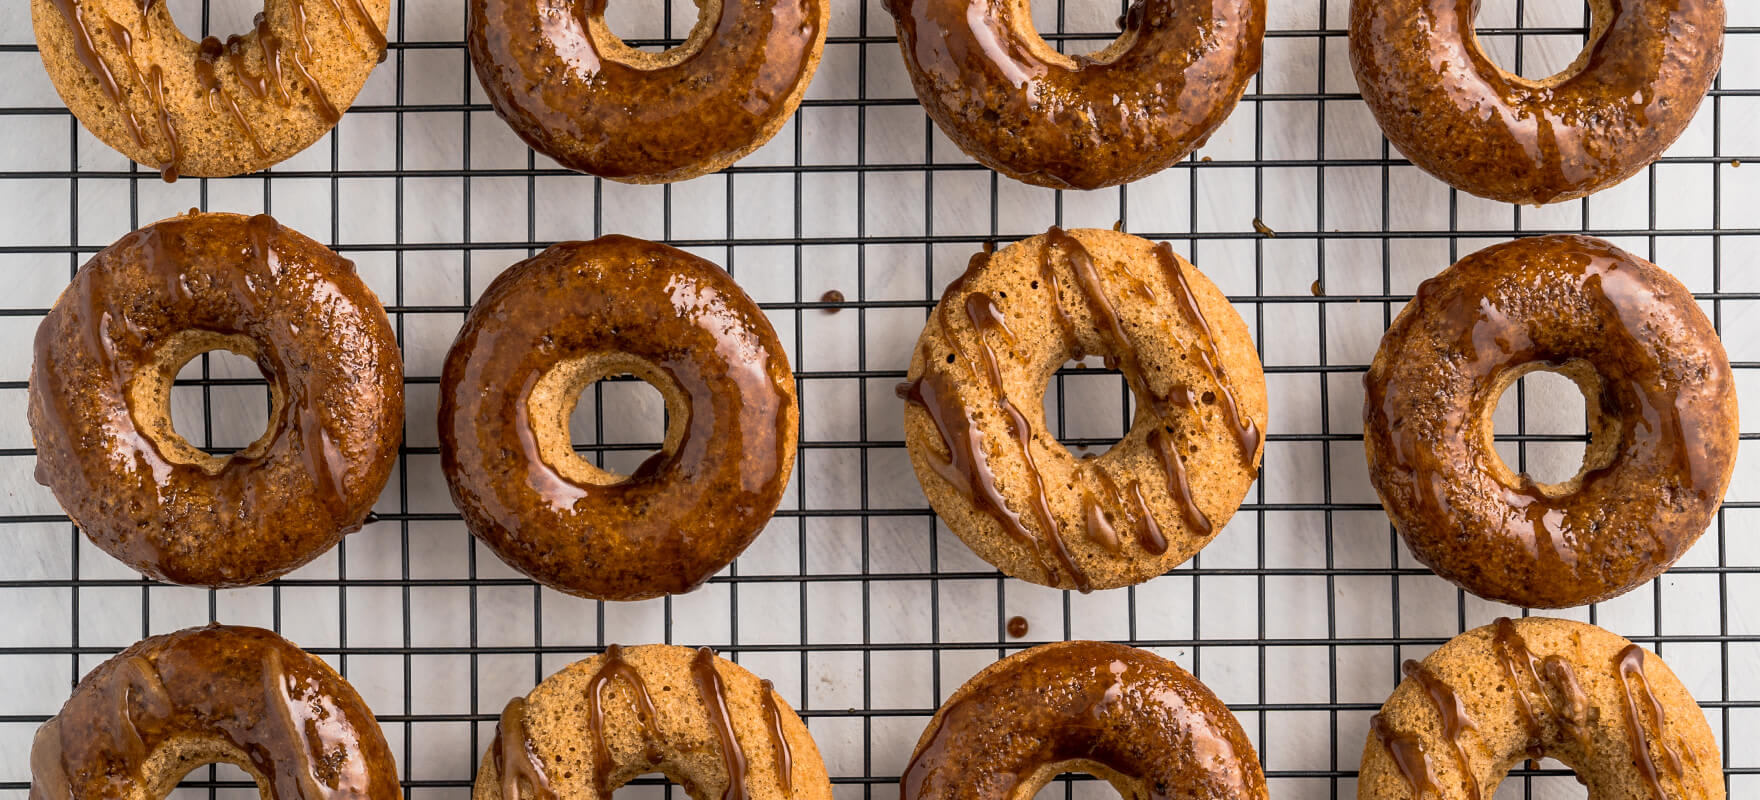 Baked chai donuts image 1